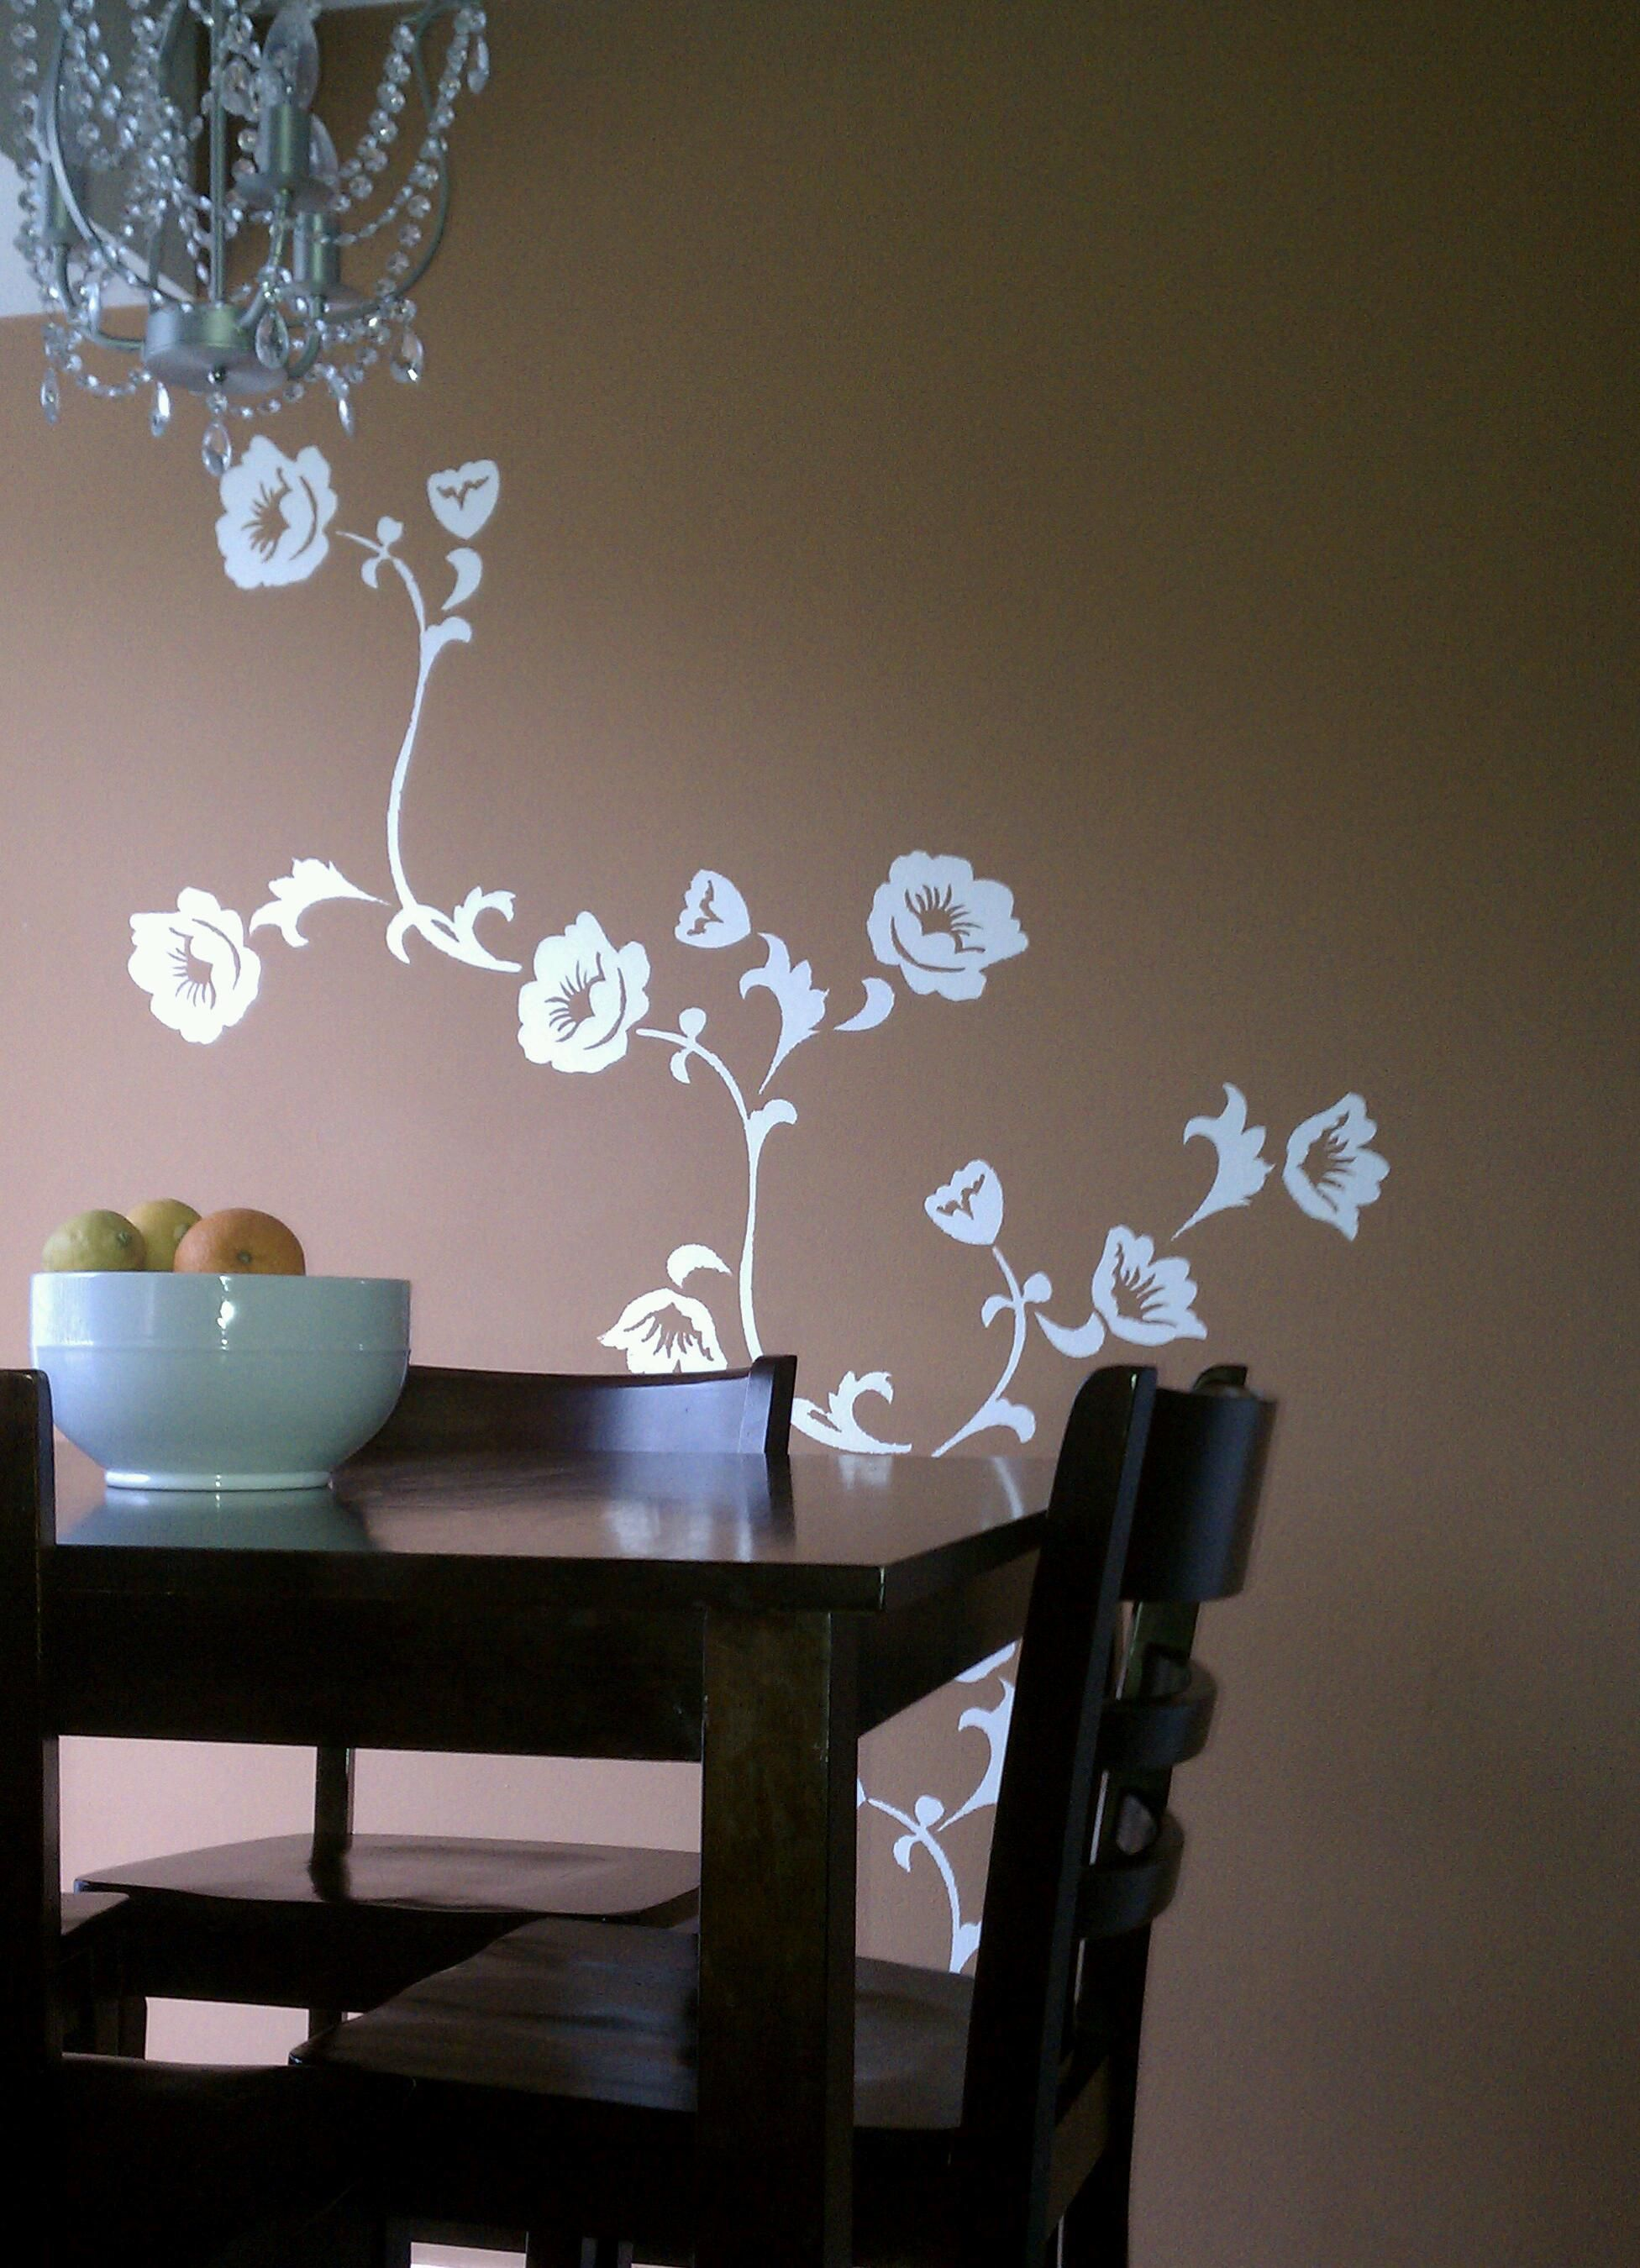 Bedroom Stencil Ideas. bedroom wall stencil ideas  Dining Room Decoration With Foral Wall Stencil